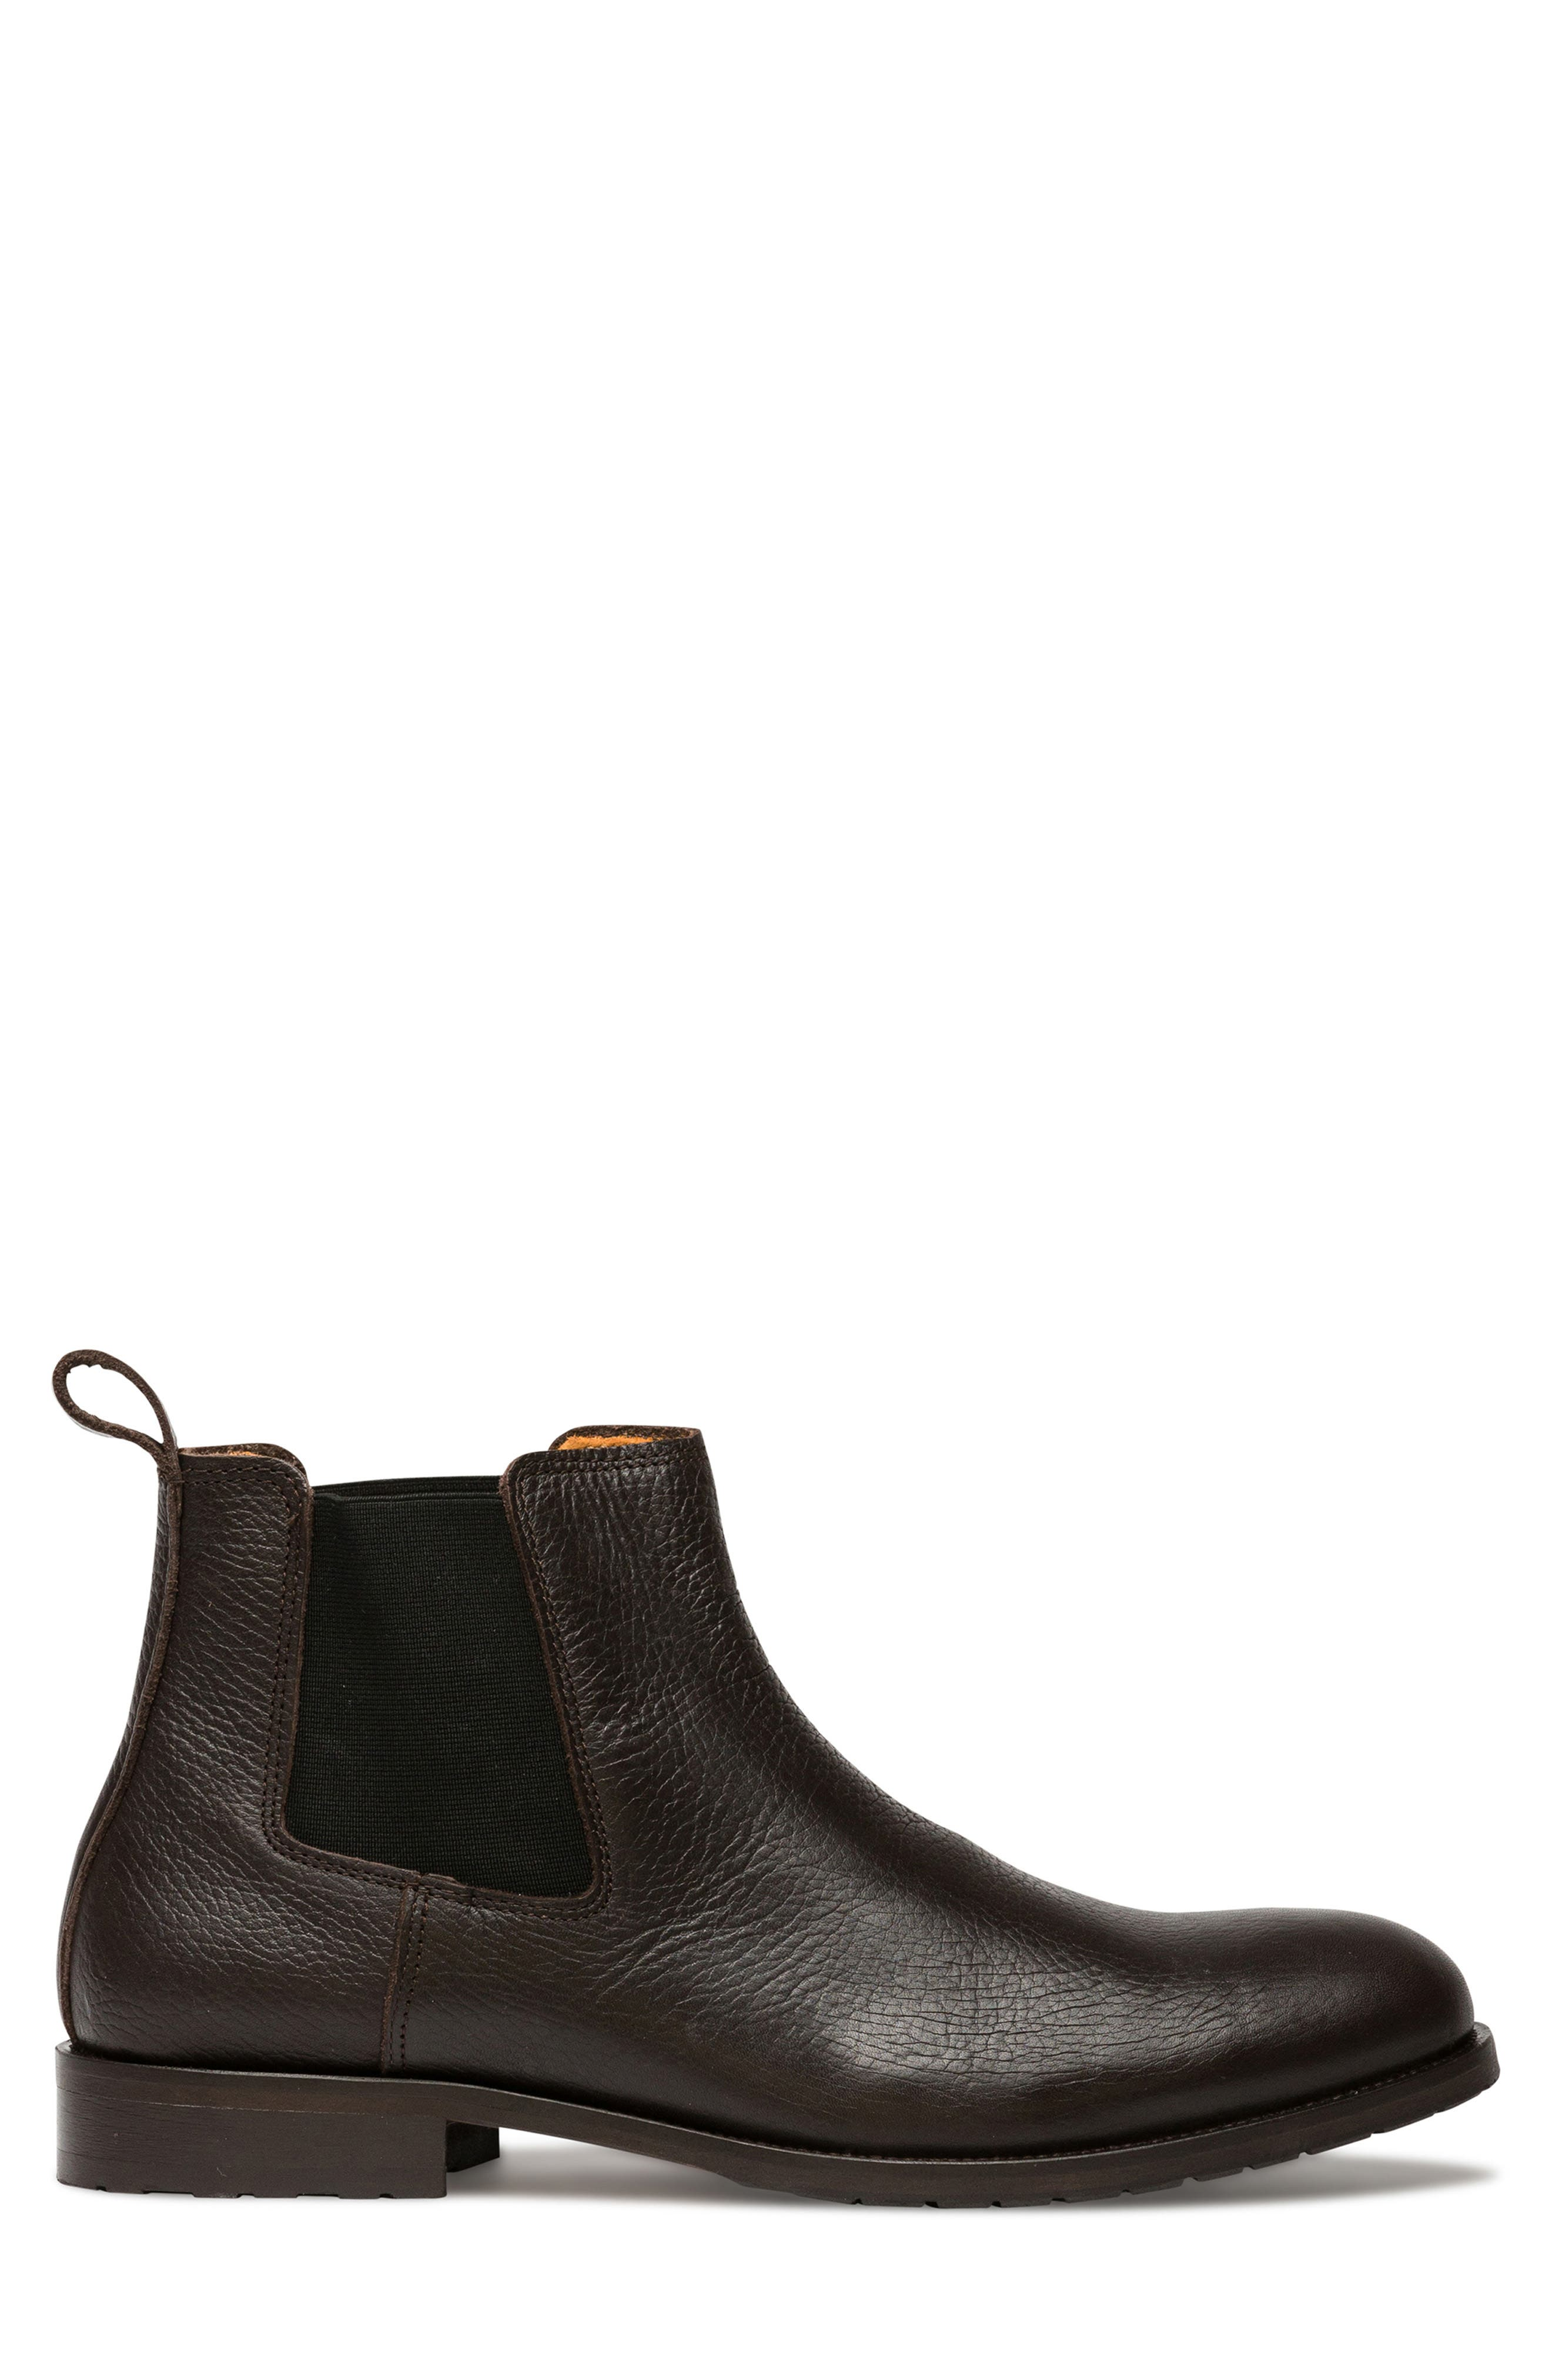 Westholme Chelsea Boot,                             Alternate thumbnail 3, color,                             CHOCOLATE LEATHER